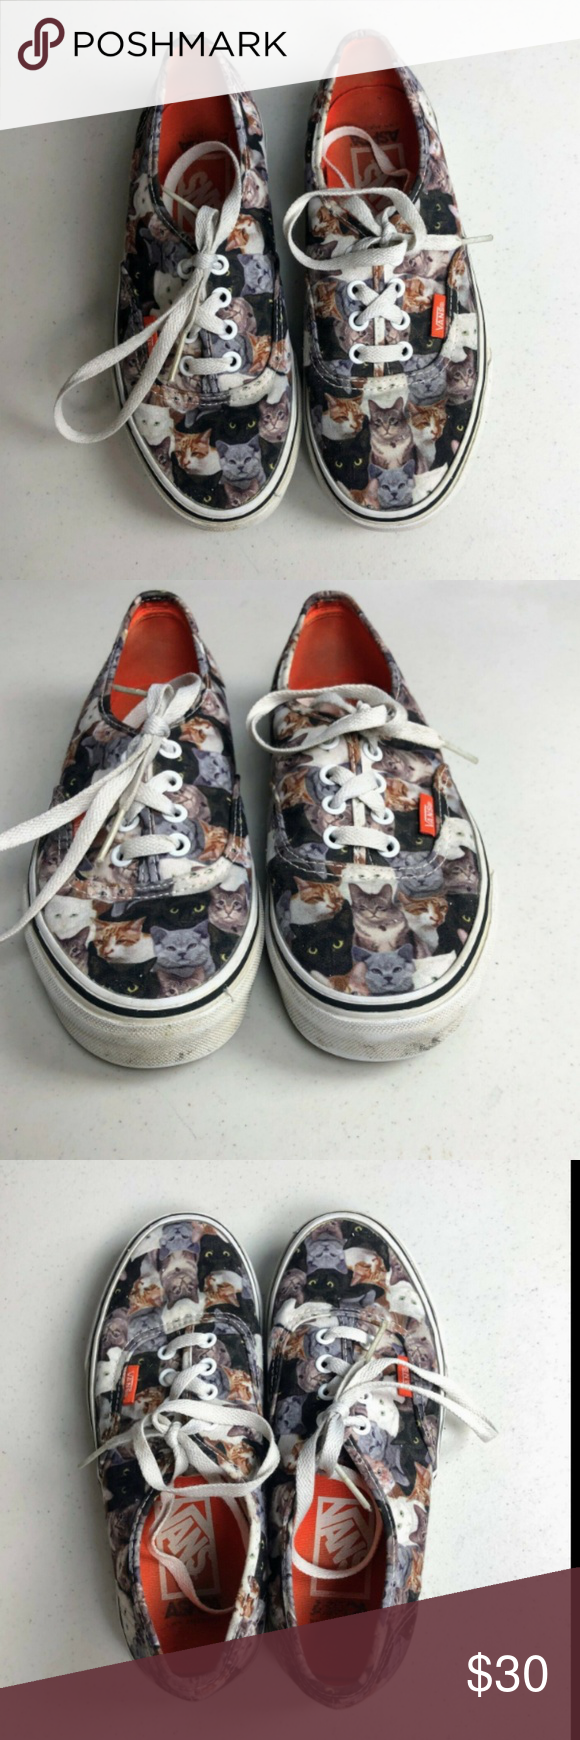 Vans Aspca Cat Kitten Kitty Lover Printed Sneakers Condition Some Light Wear As Shown In Photos Details These Are Fun Cat Print Sneaker In 2019 Sneakers Vans Cats Kittens